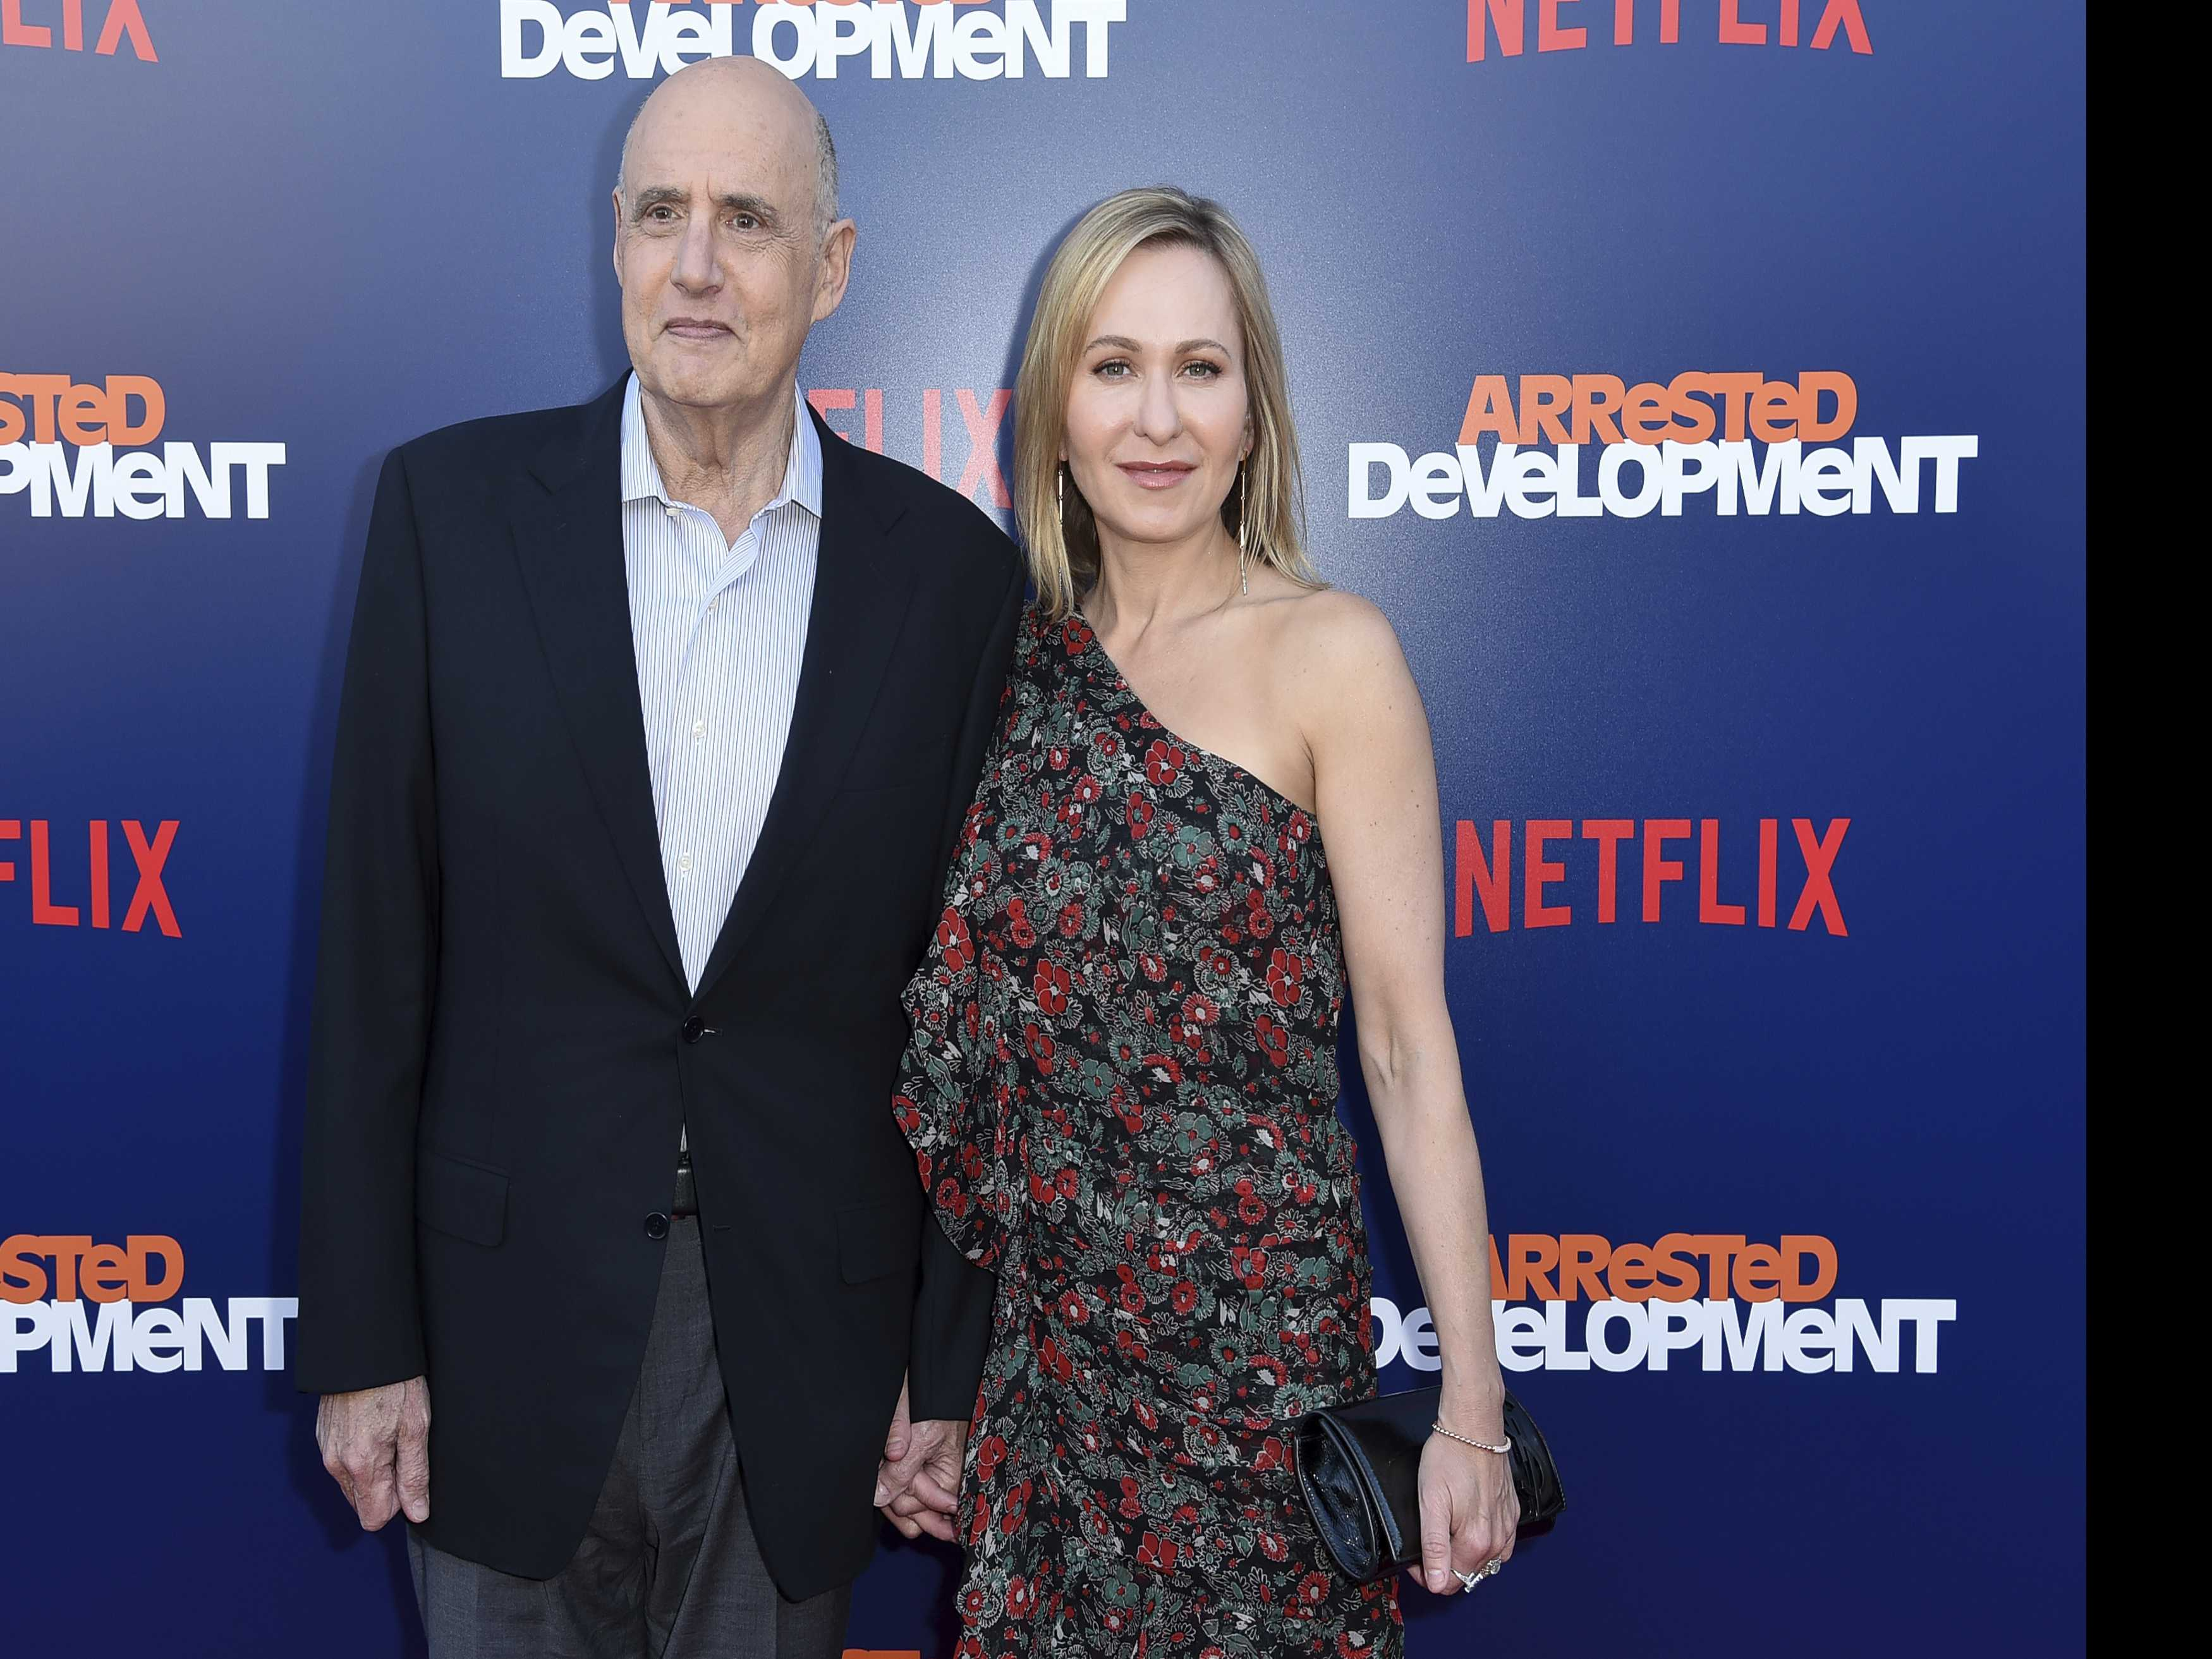 'Arrested Development' Stars Stand by Co-Star Tambor